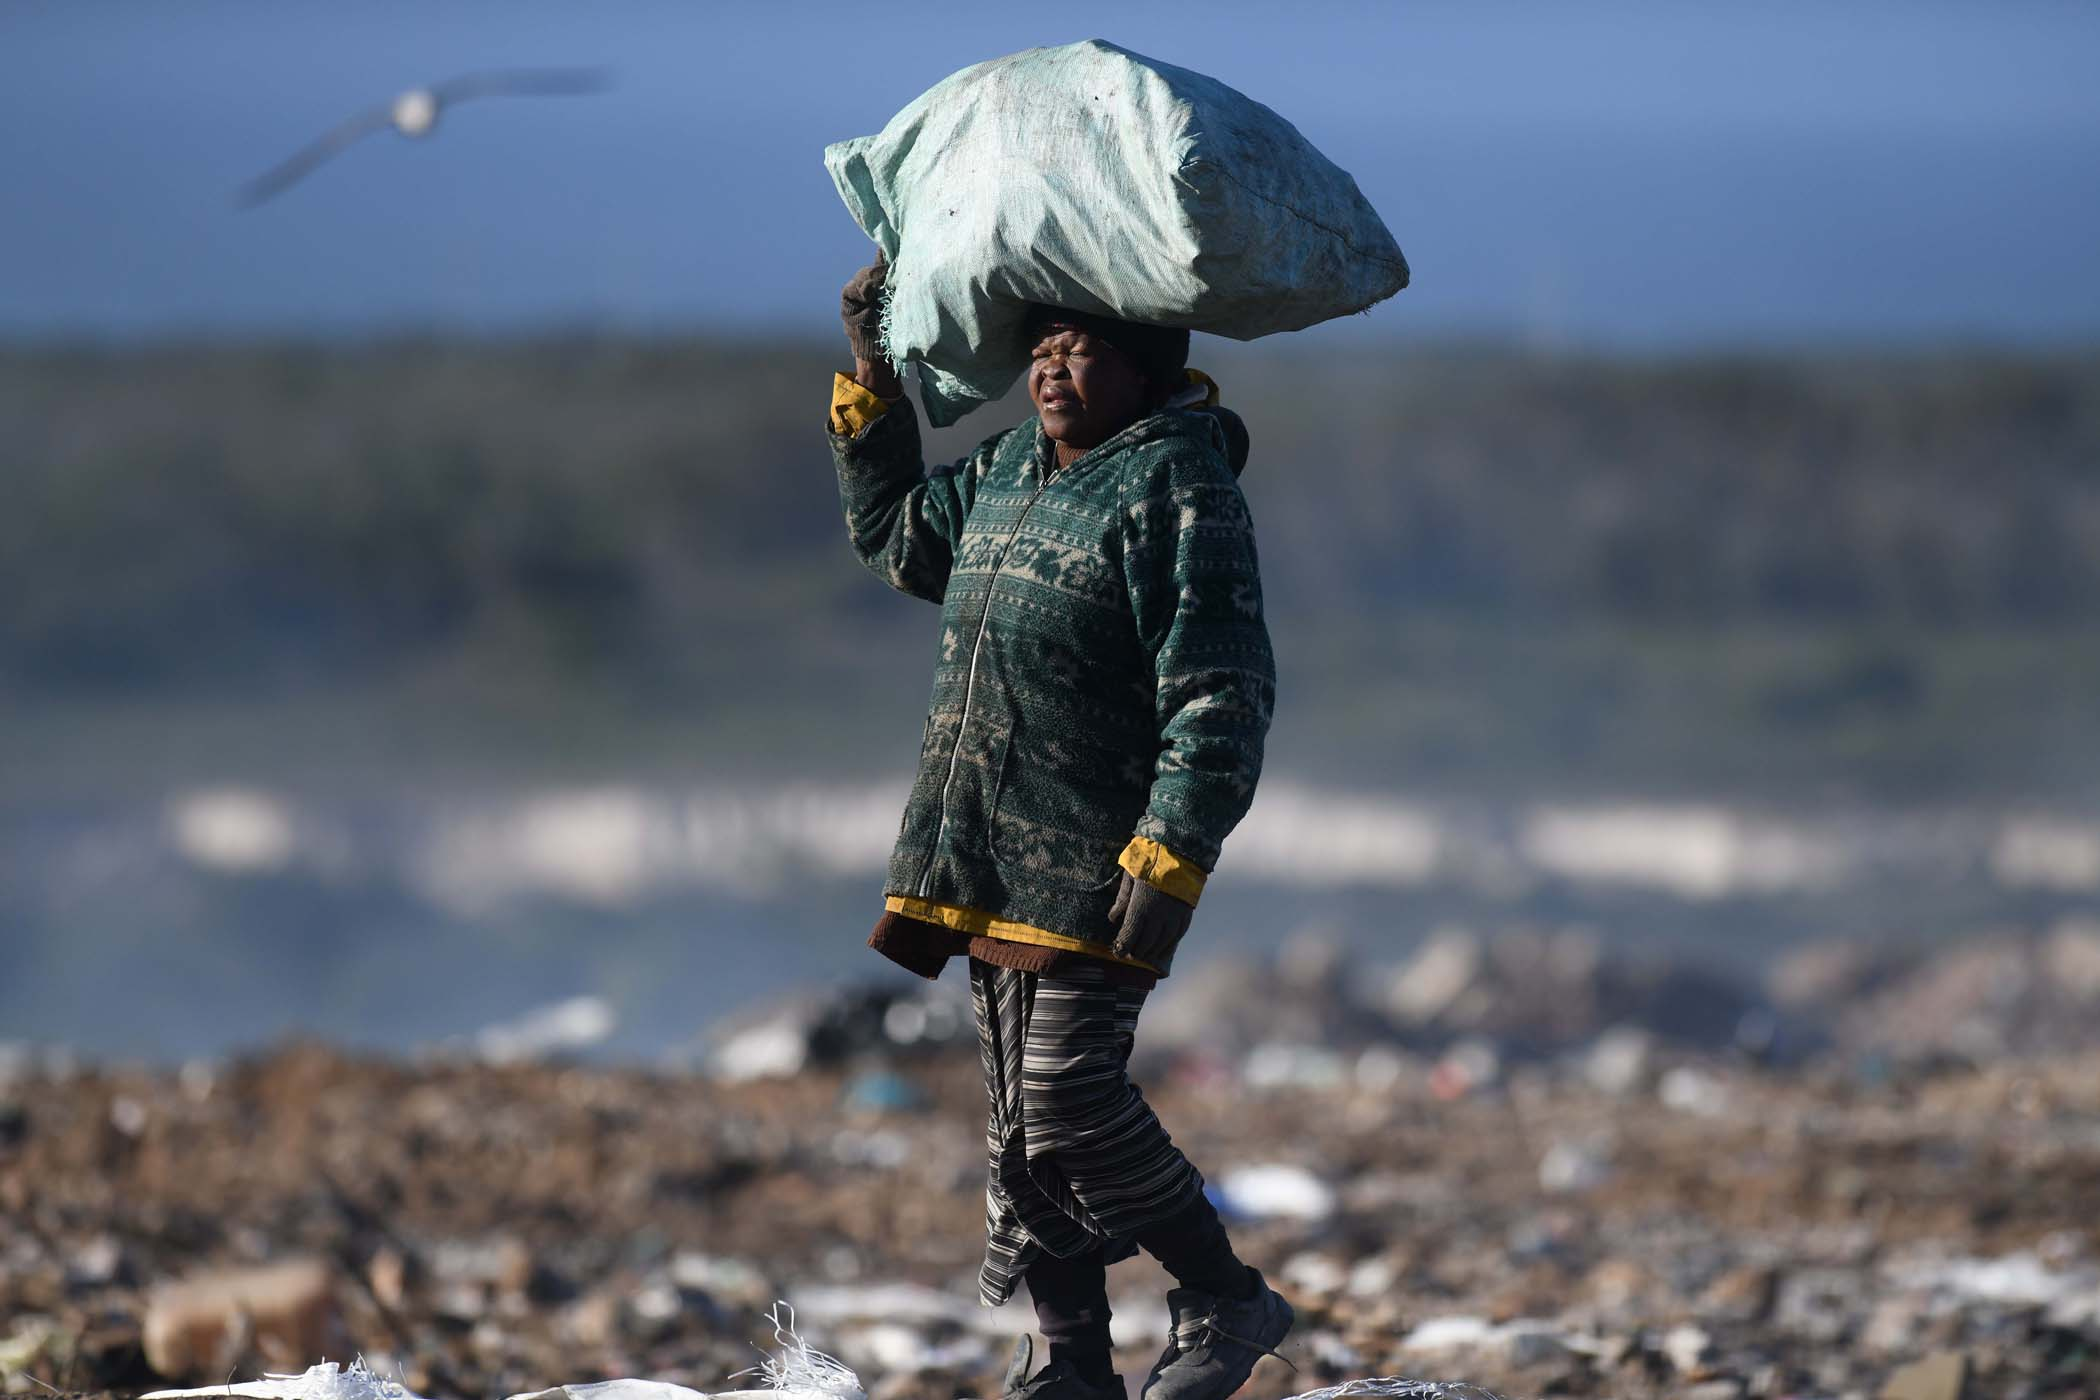 a woman carries her bag of recyclables on her head.